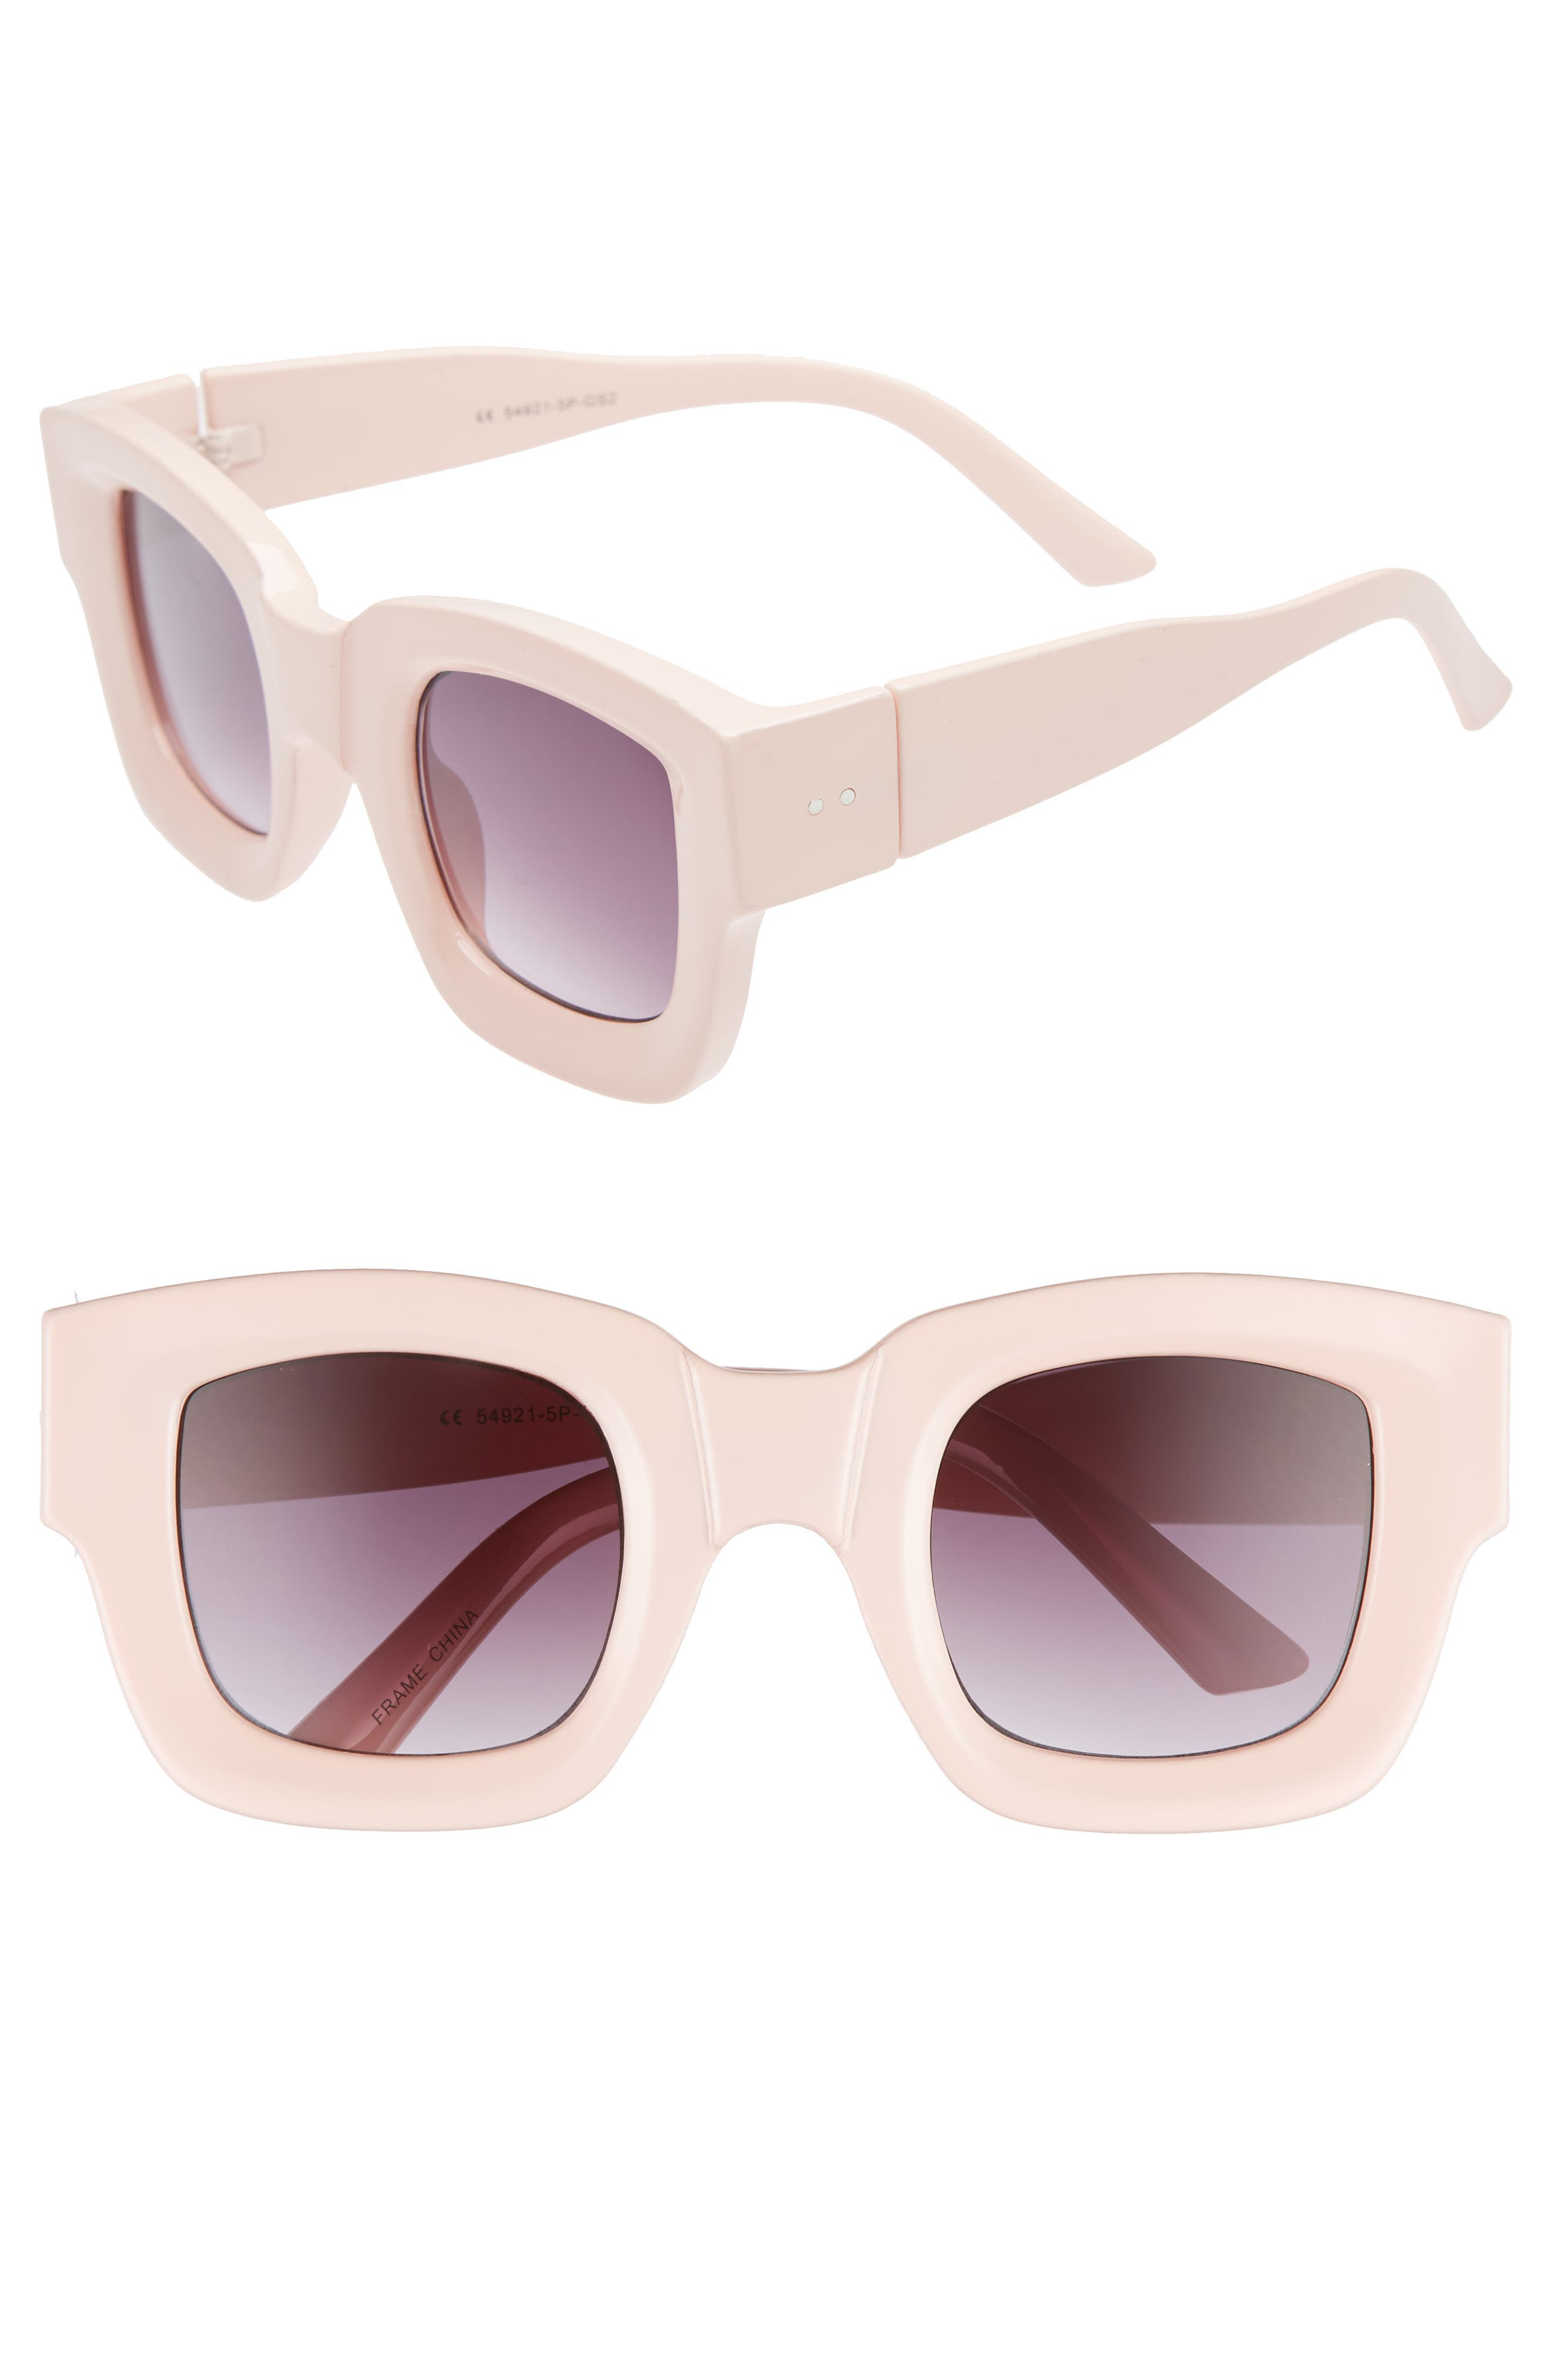 45mm Square Sunglasses,                         Main,                         color, PALE PINK